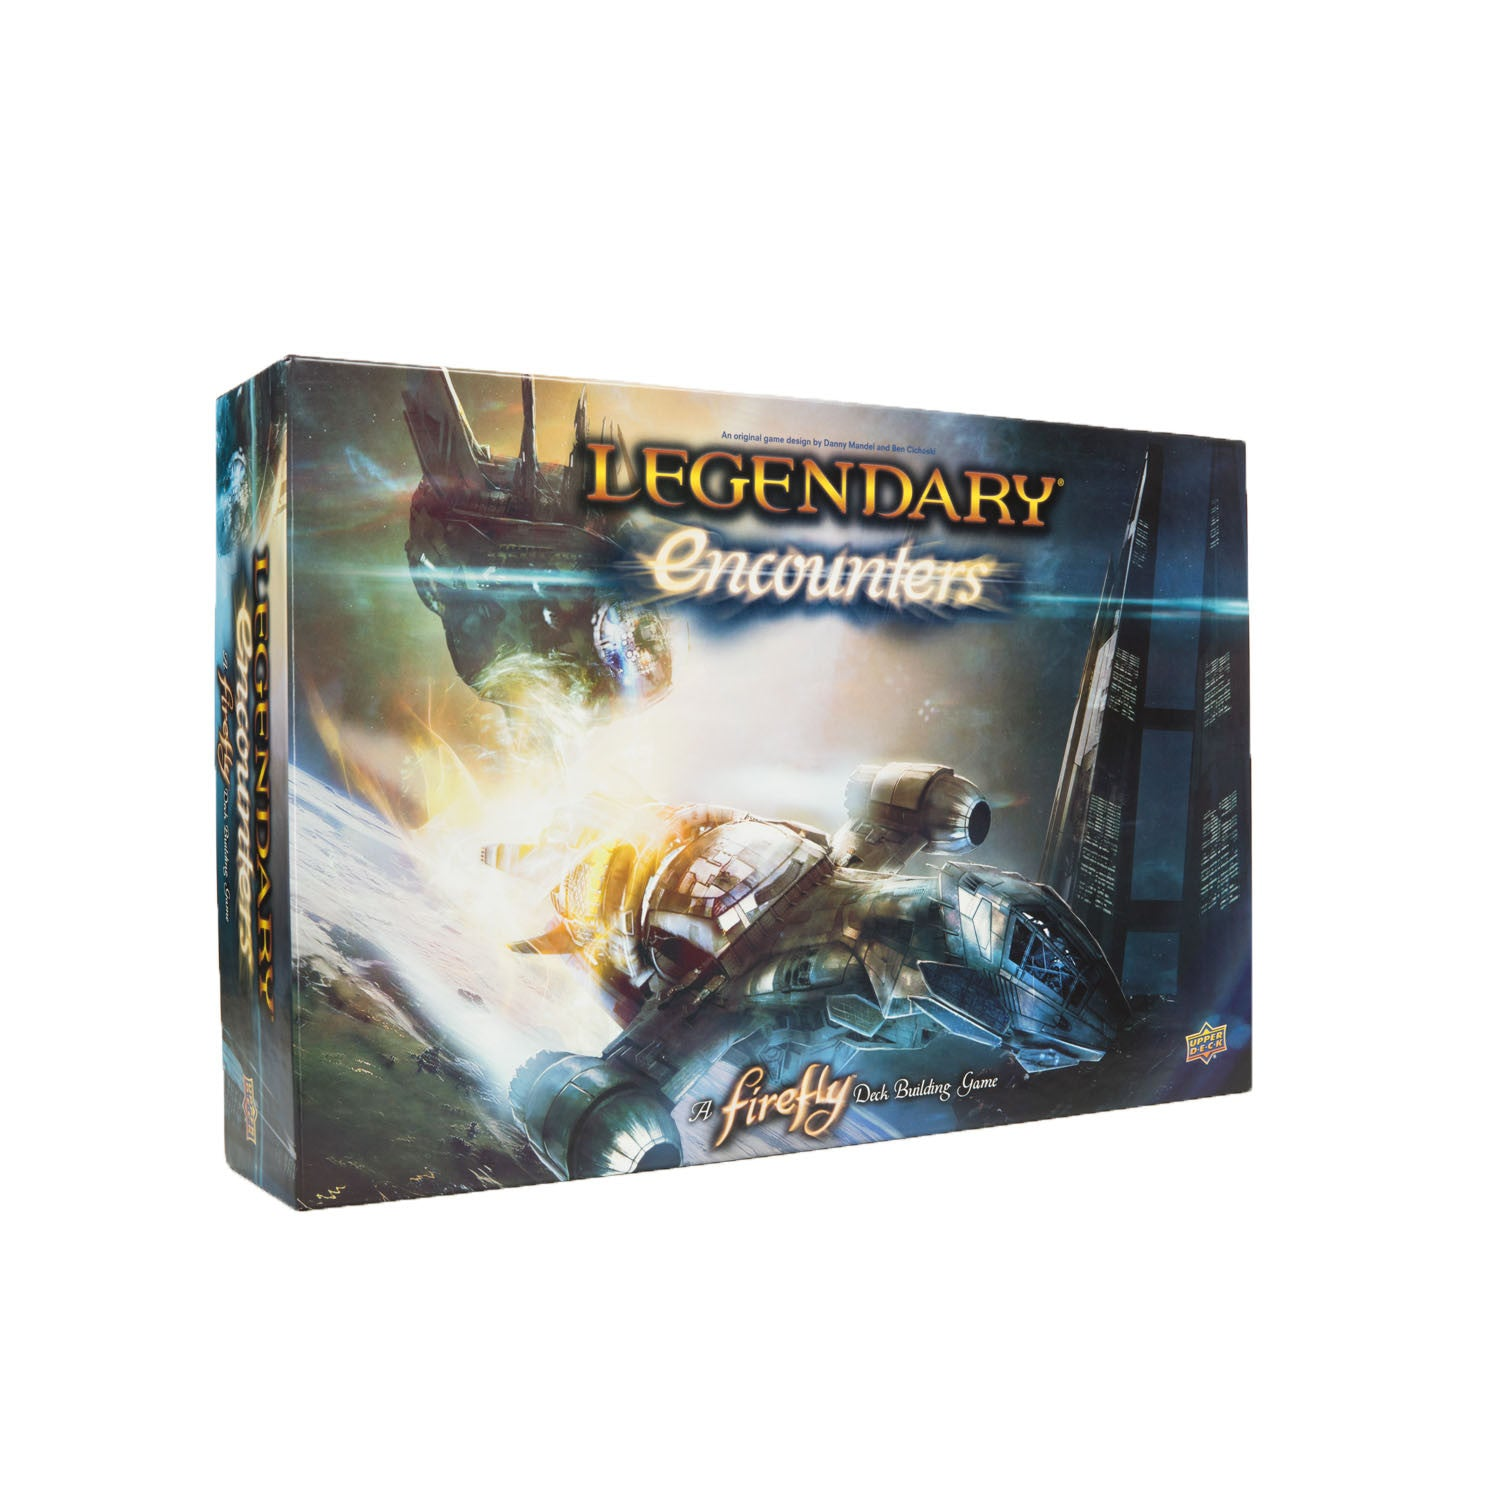 Legendary Encounters: A Firefly Deckbuilding Game